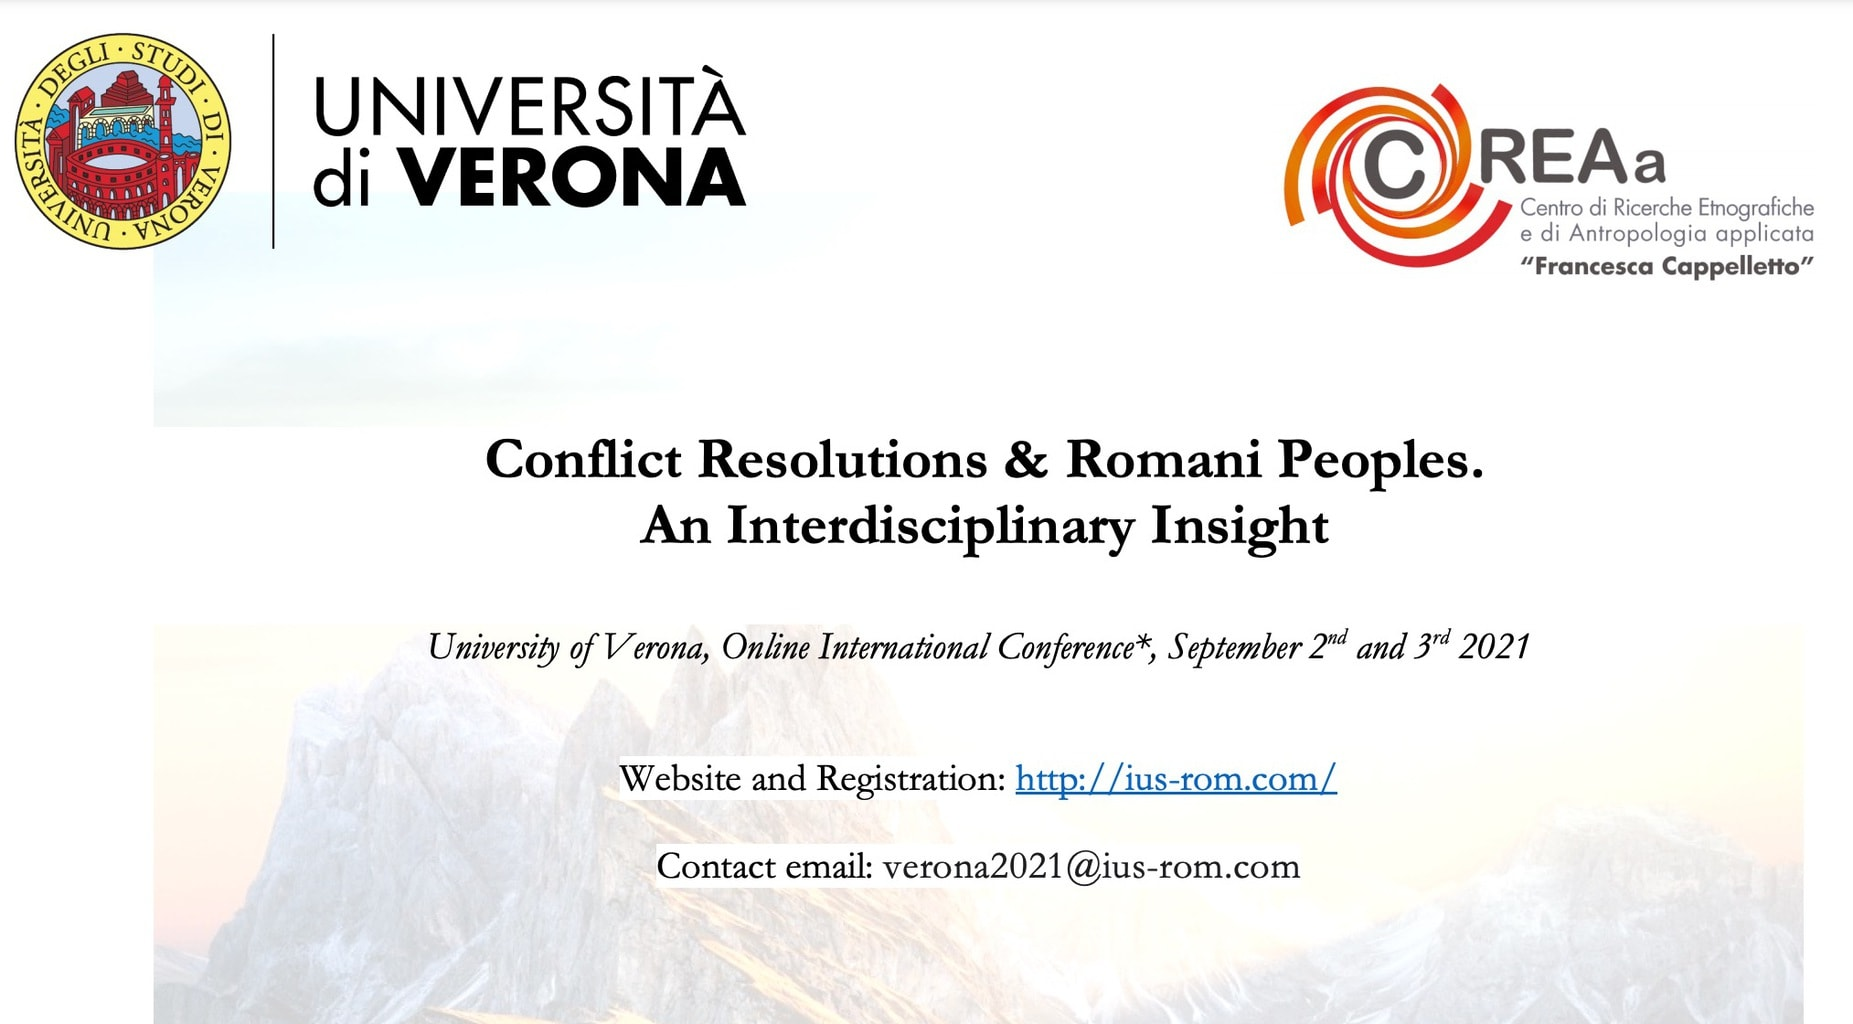 Conflict Resolutions & Romani Peoples  An Interdisciplinary Insight